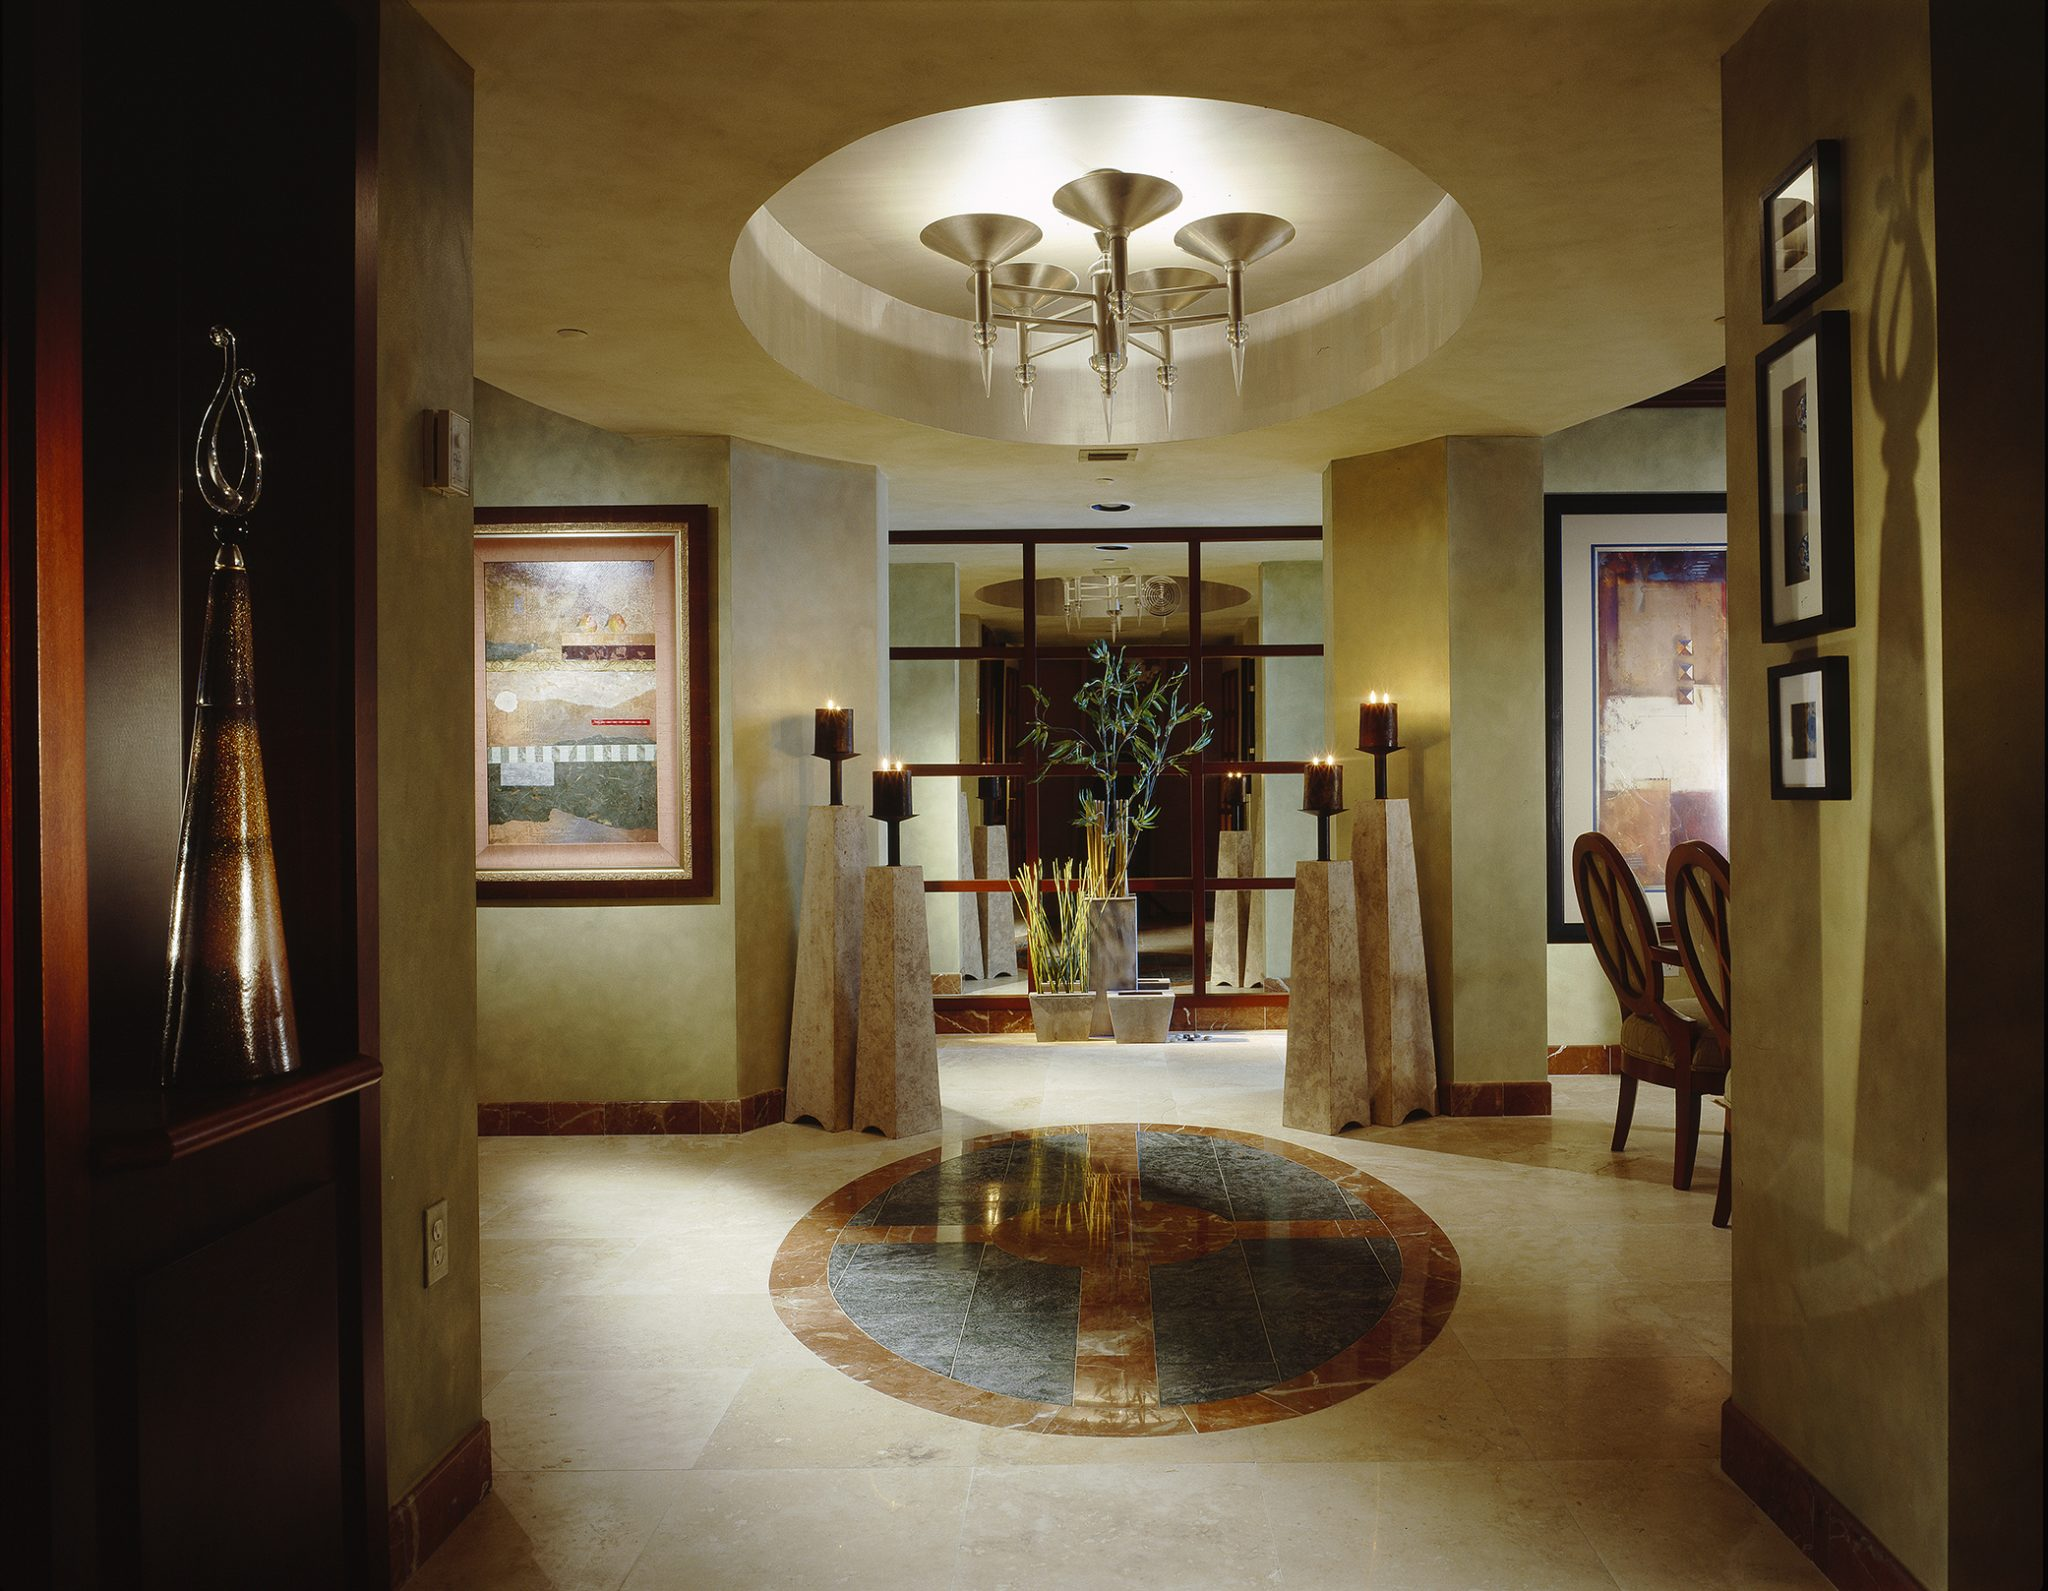 CITY MODERN Foyer features symmetrical styling. by Perla Lichi Design